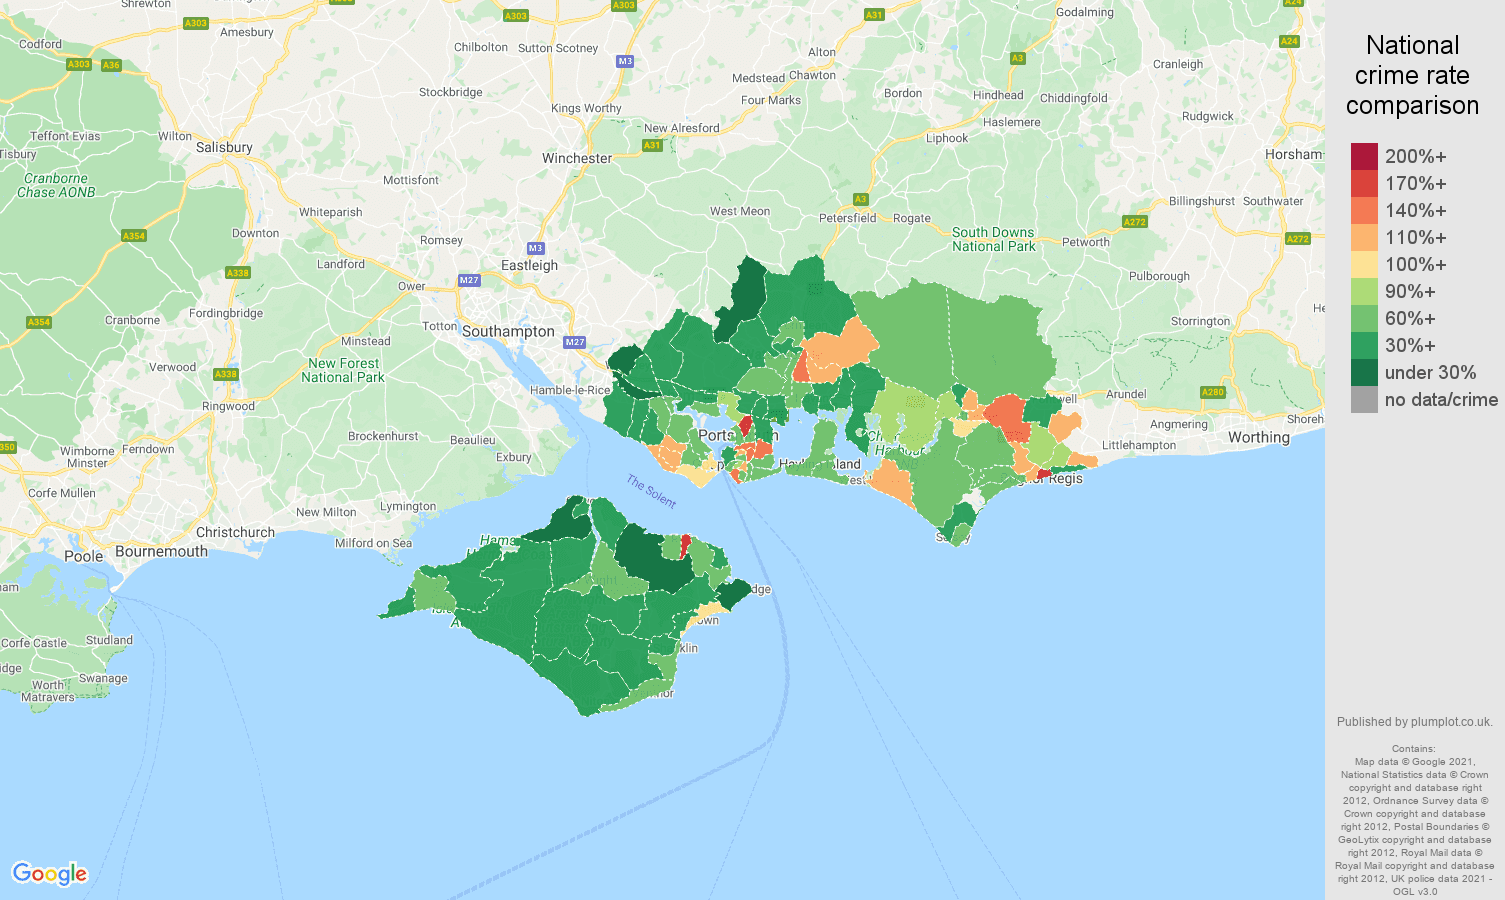 Portsmouth antisocial behaviour crime rate comparison map